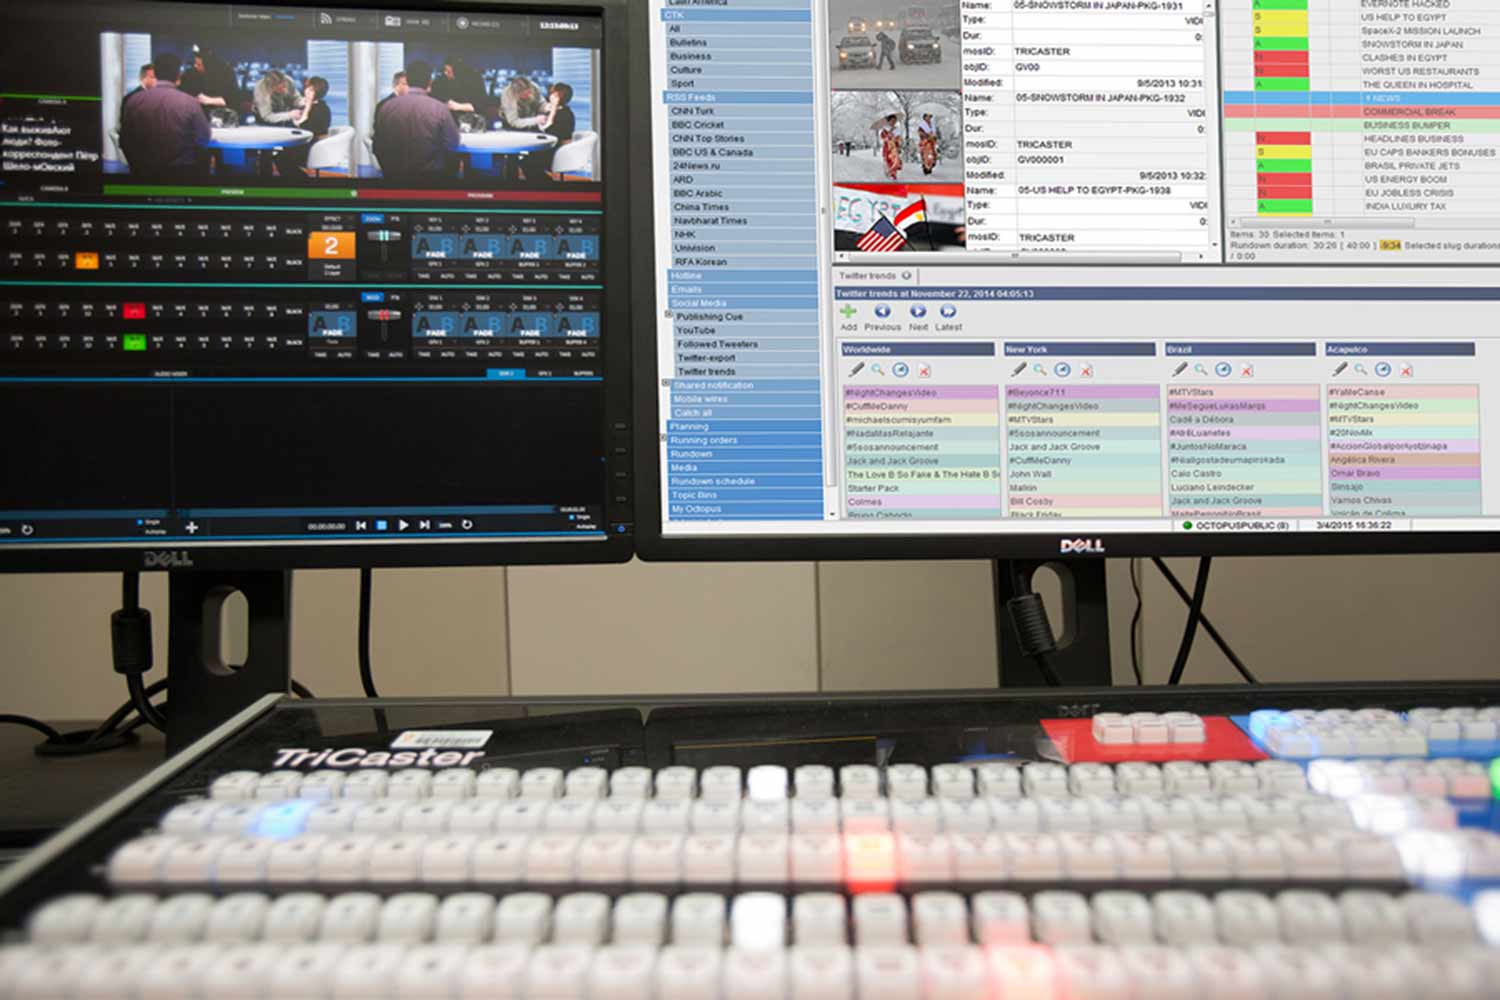 Tricaster and octopus